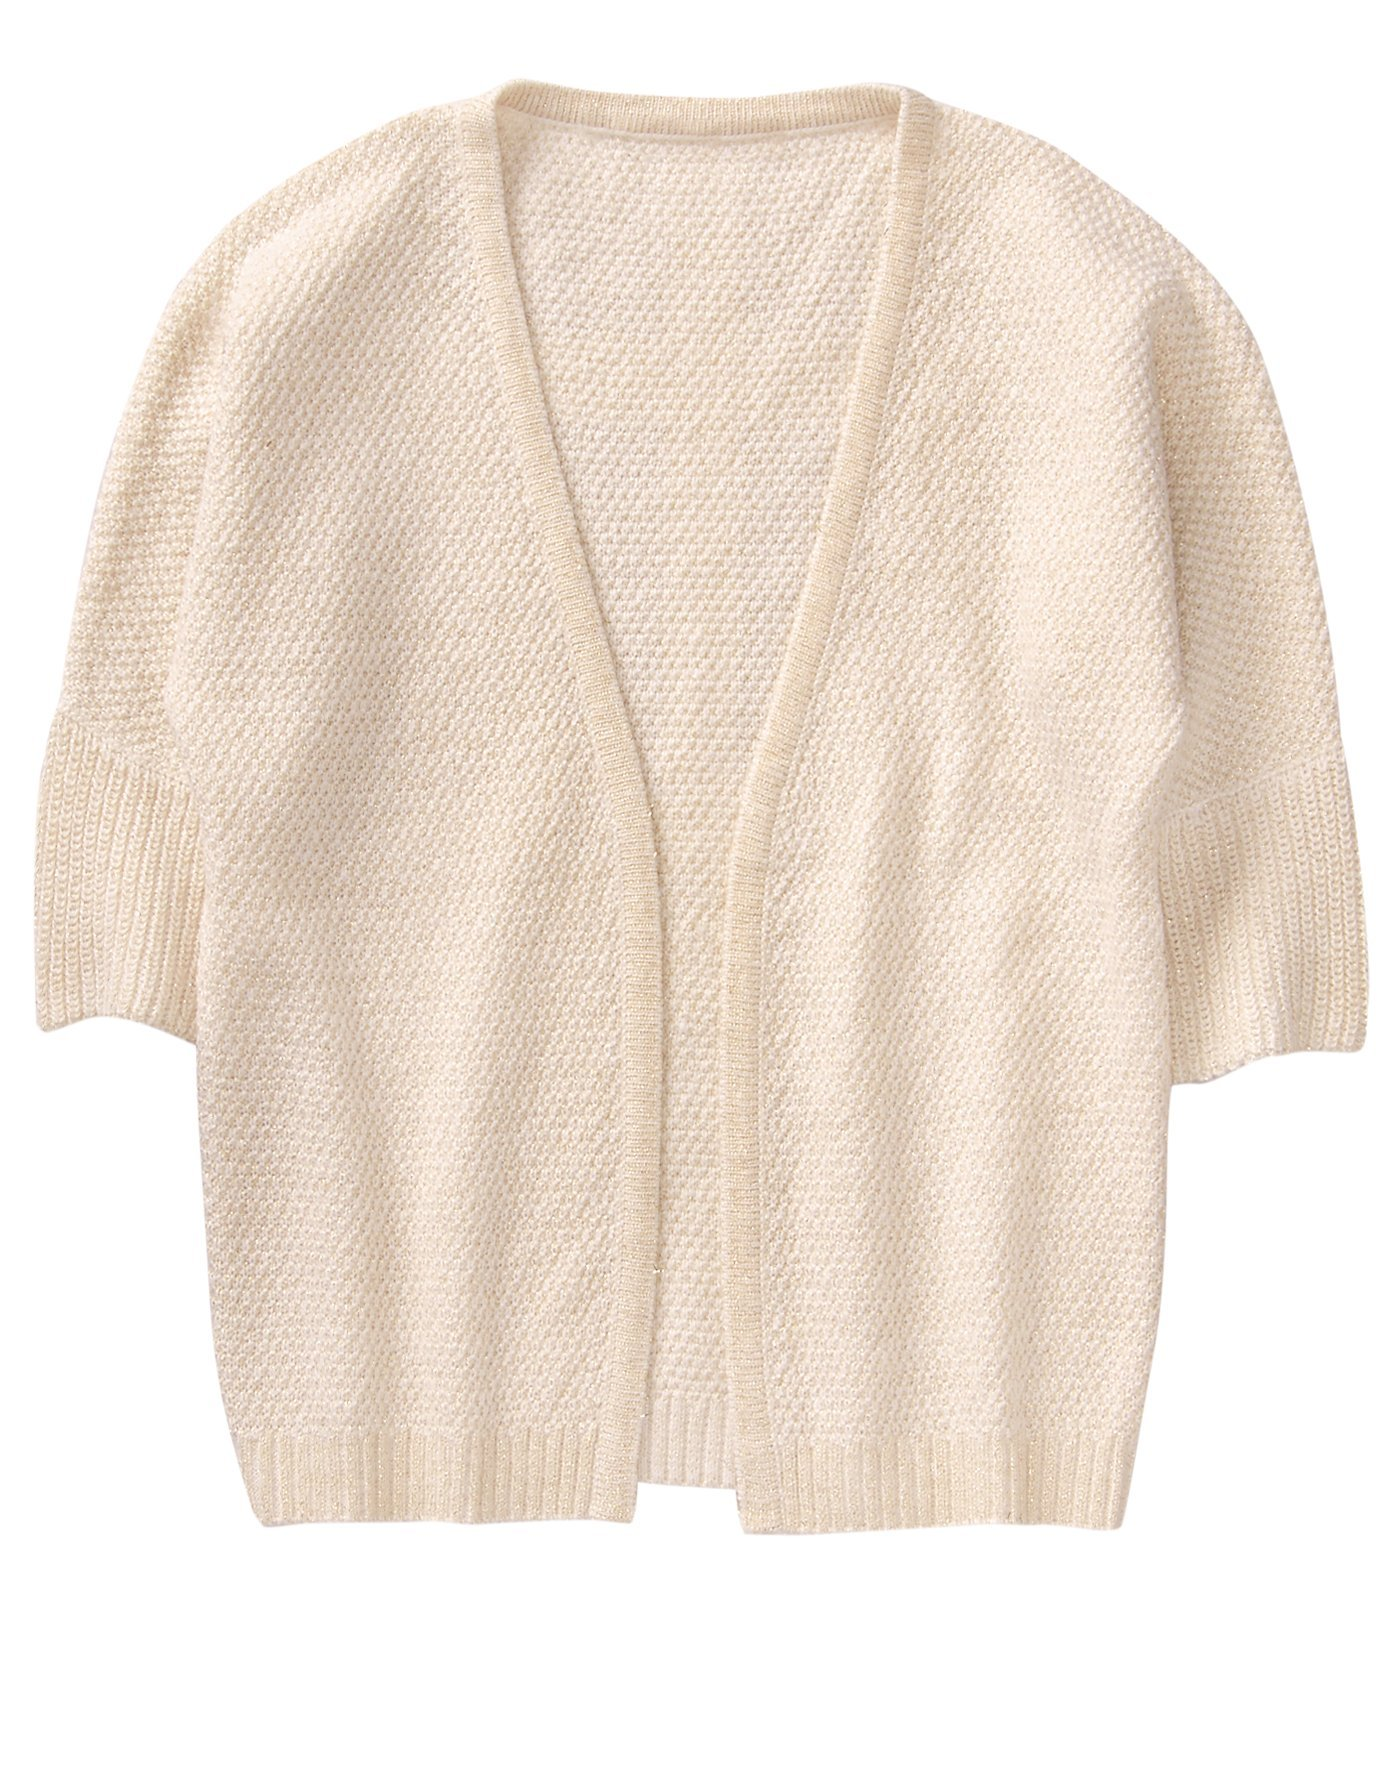 Crazy 8 Toddler Girls' 3/4 Sleeve Open Front Cardigan, Cream, 3T